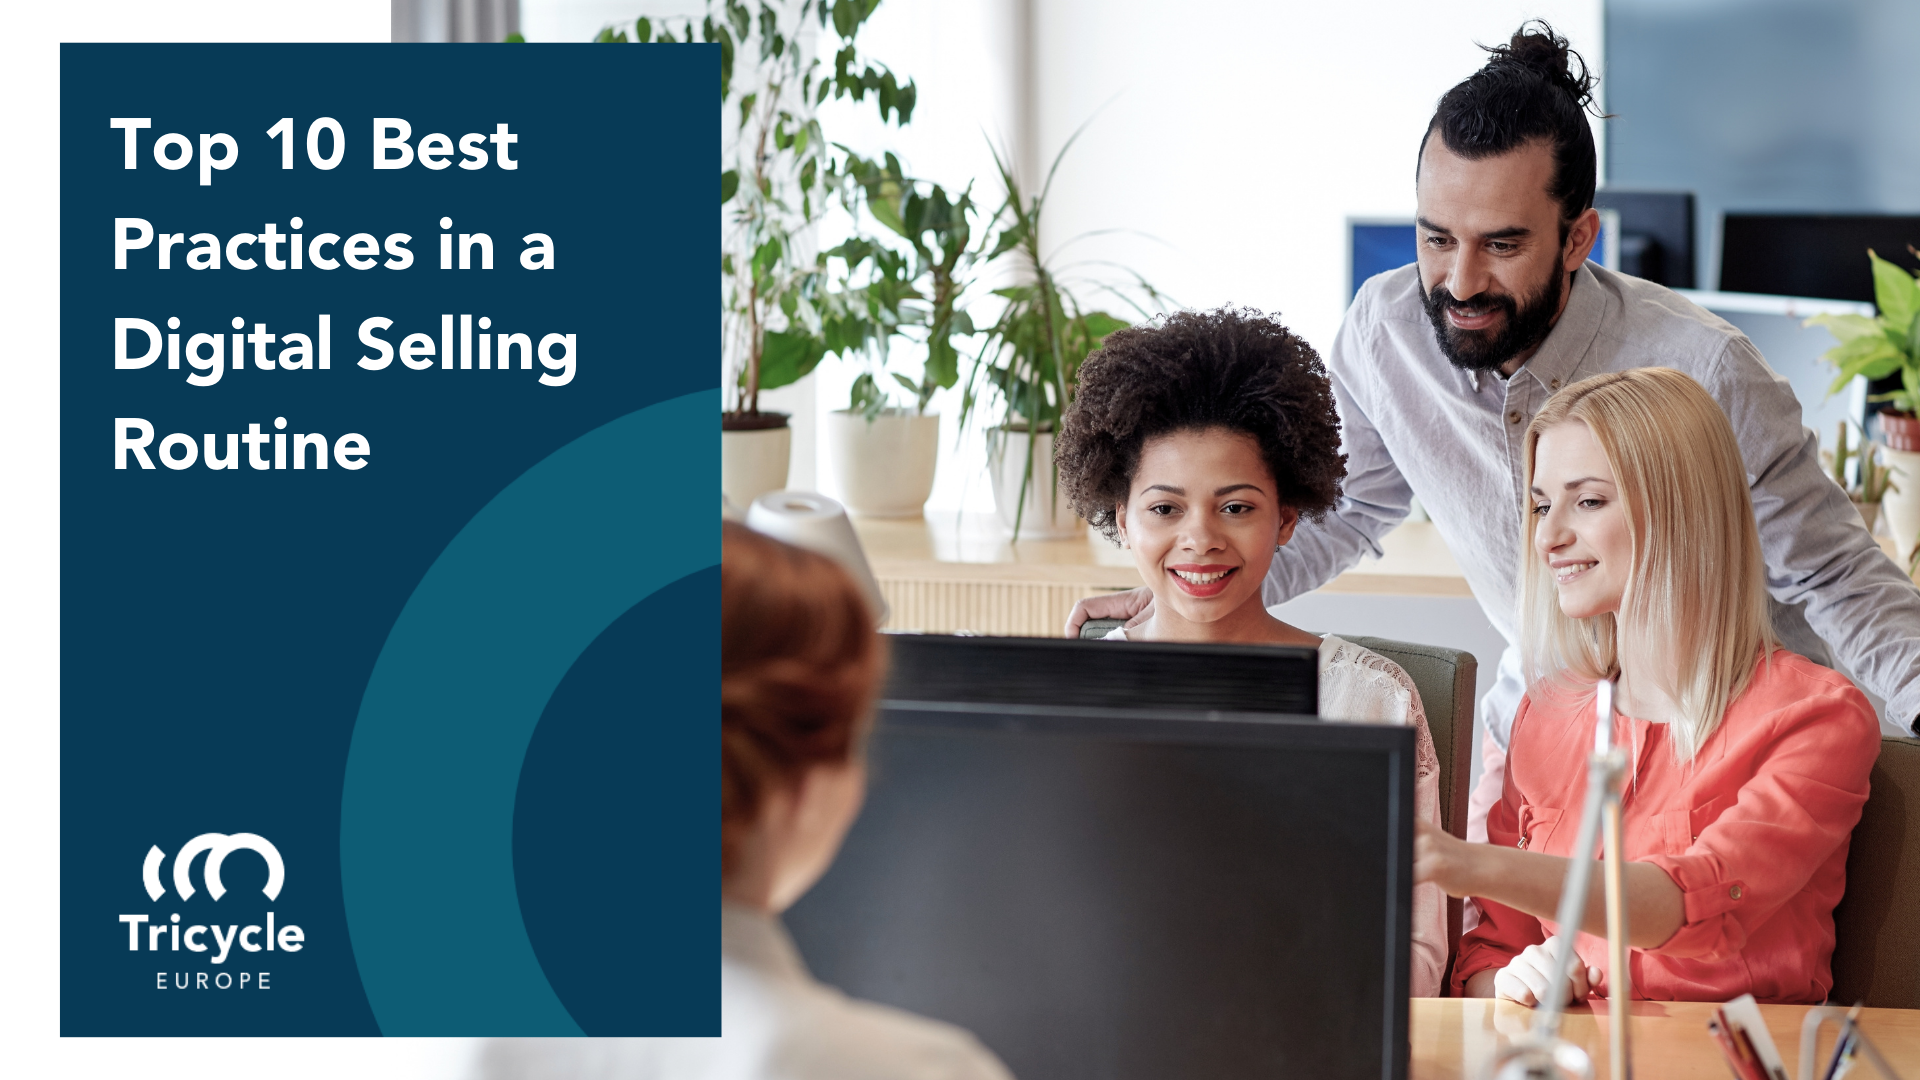 Top 10 Best Practices in a Digital Selling Routine